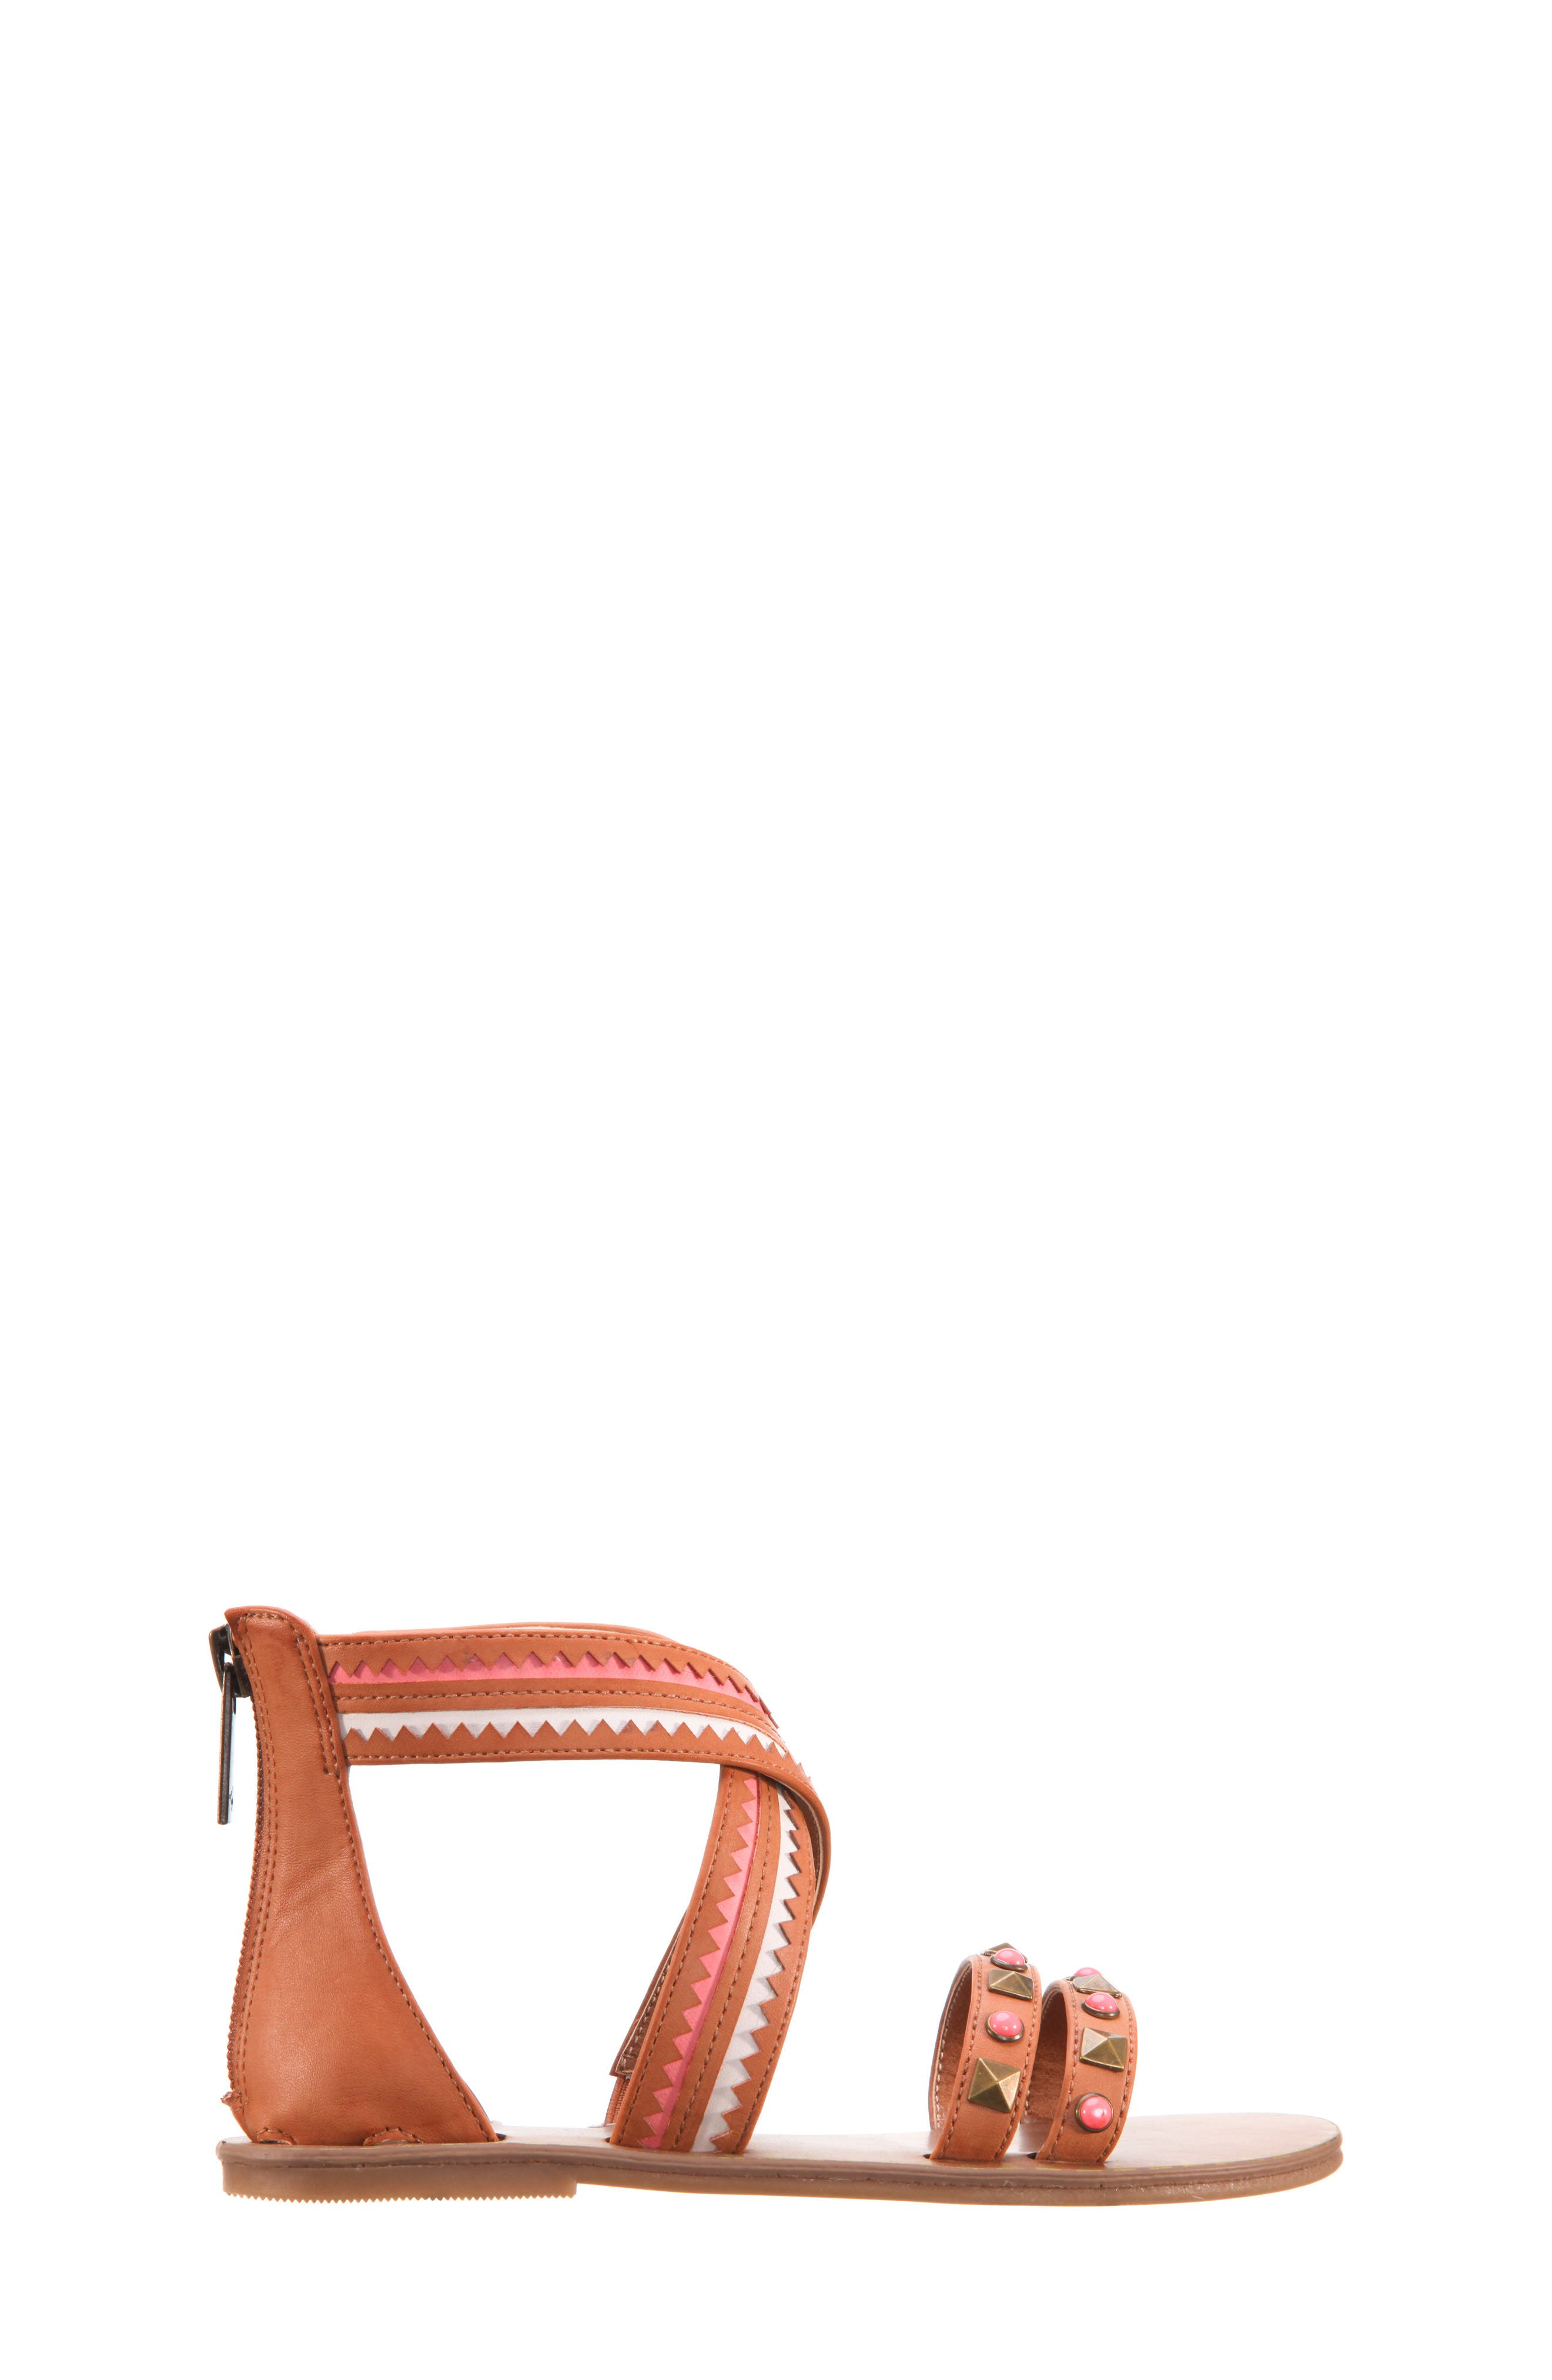 Phelisha Embellished Gladiator Sandal,                             Alternate thumbnail 3, color,                             Tan Burnished